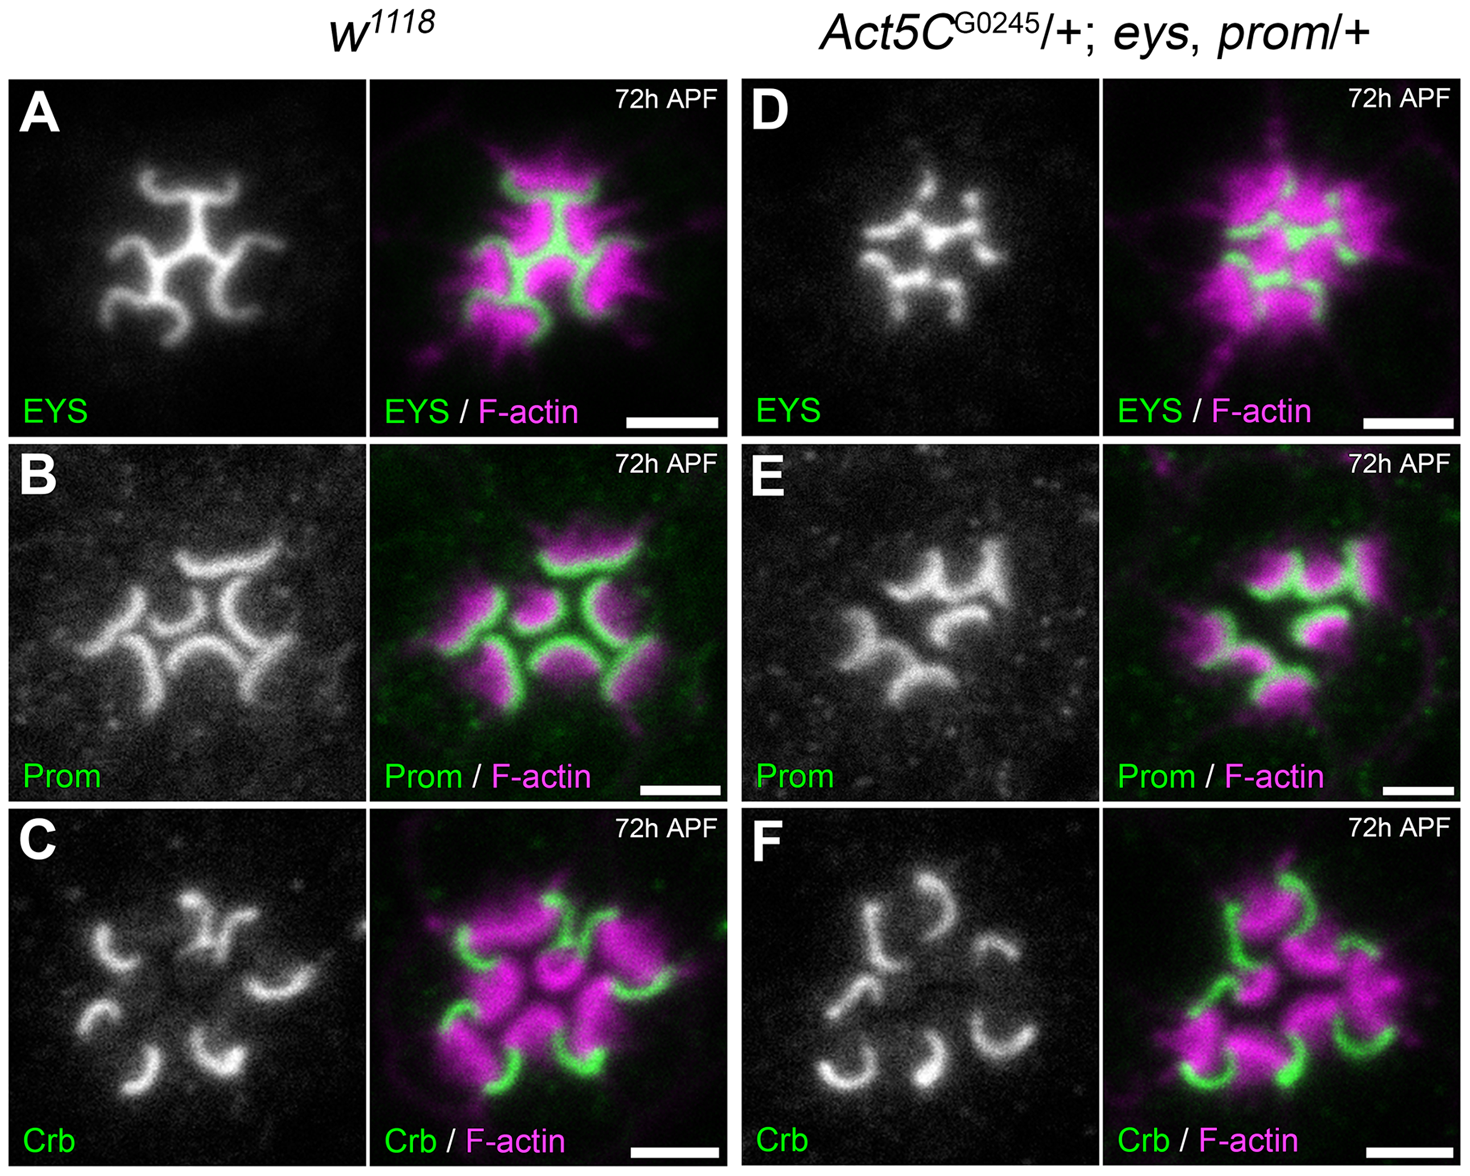 Localization of Prominin, EYS, and Crumbs in the <i>Act5C</i>/+; EP-TH genetic background.